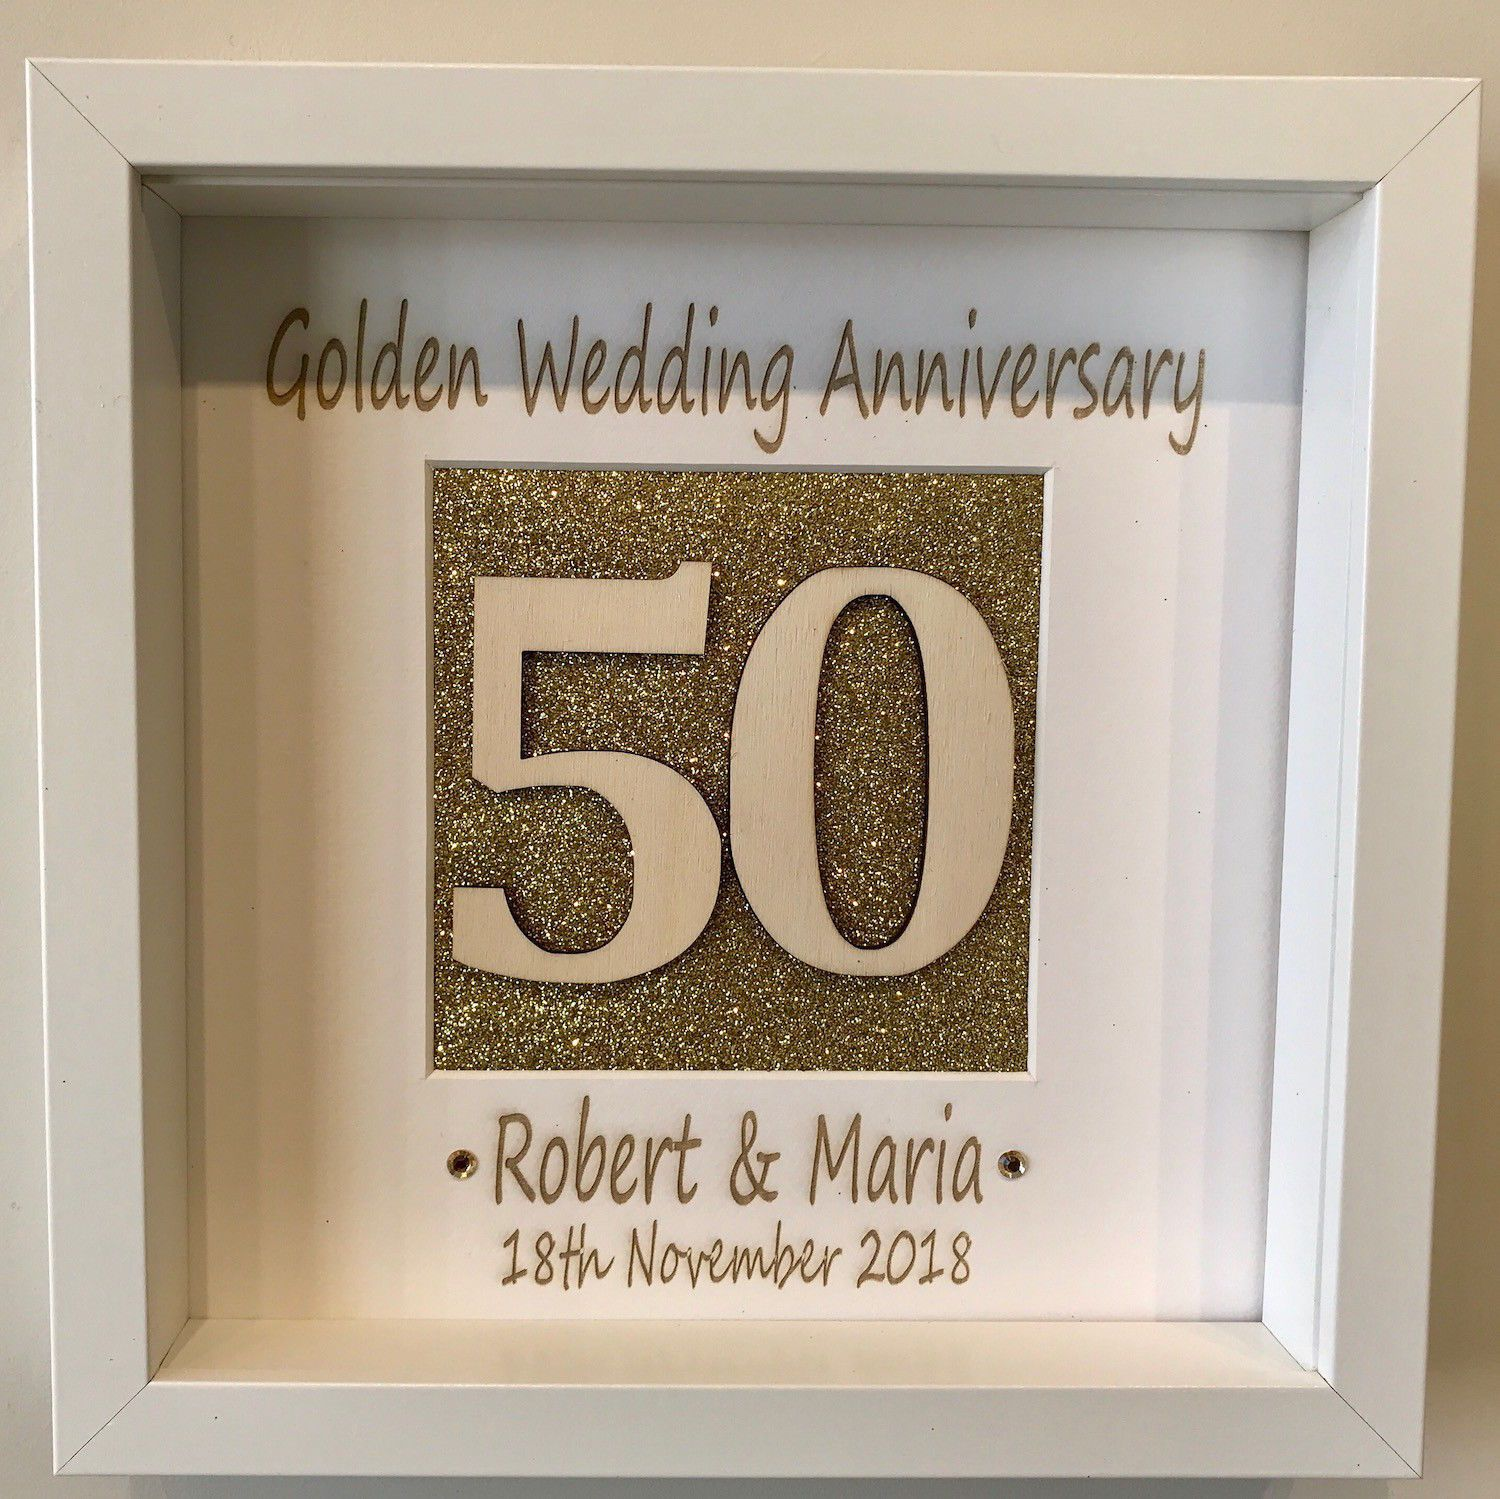 Golden Wedding Gift Ideas Uk: Golden Wedding Anniversary 50th Personalised Picture Gift